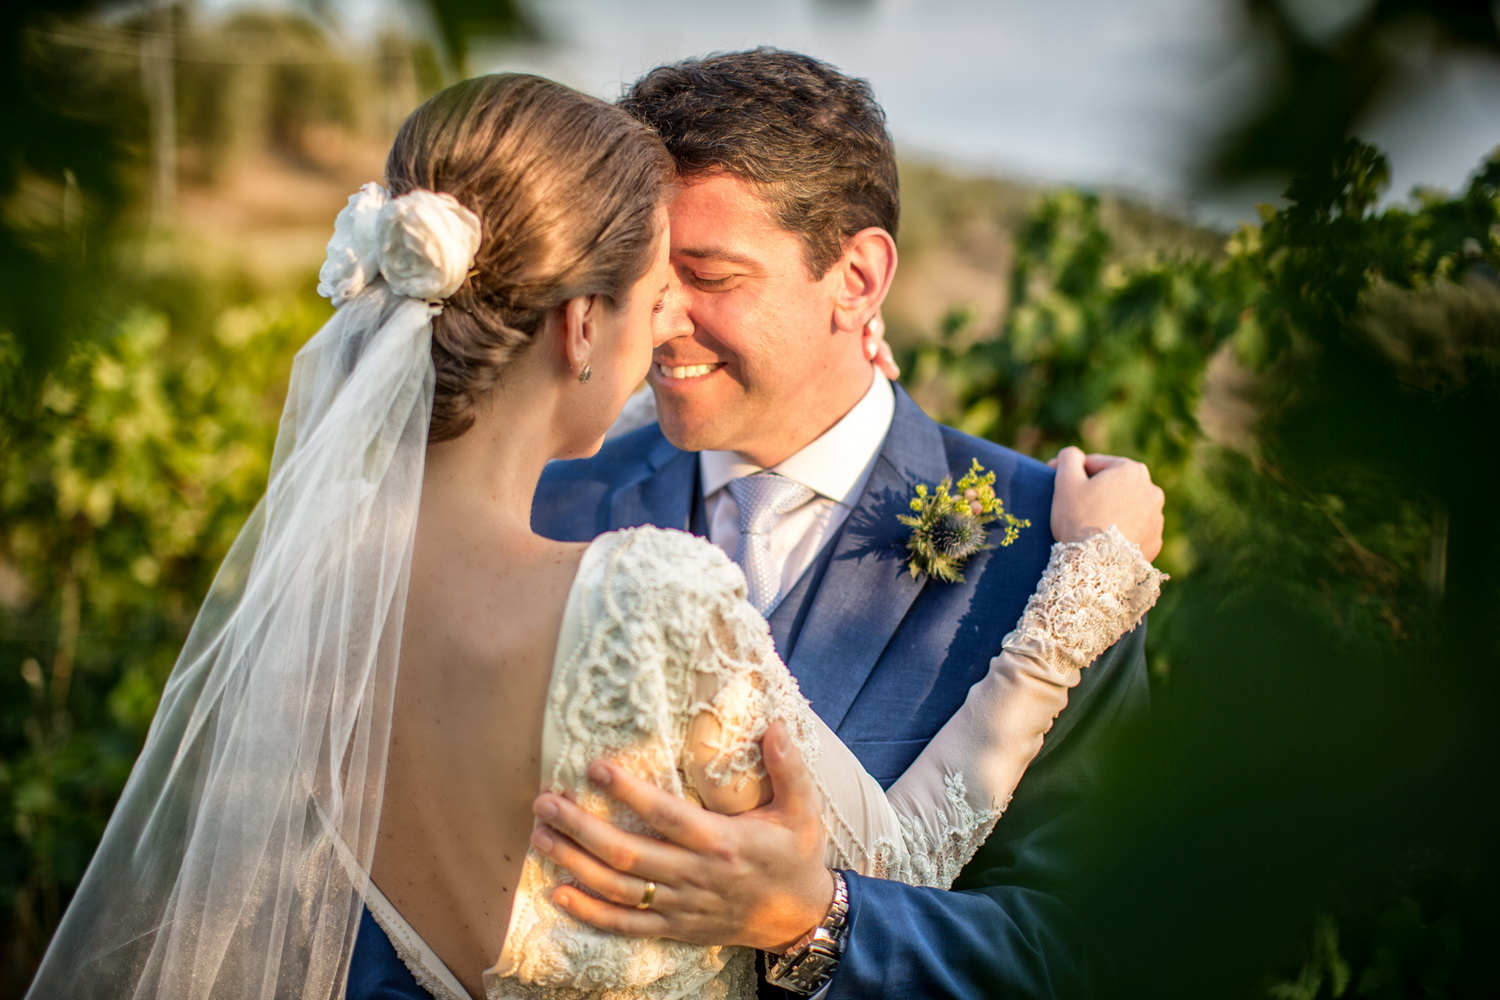 Destination Wedding Toscana | Caroline e Fernando destination wedding na toscana | caroline e fernando Destination Wedding na Toscana | Caroline e Fernando marco zammarchi destination wedding 41